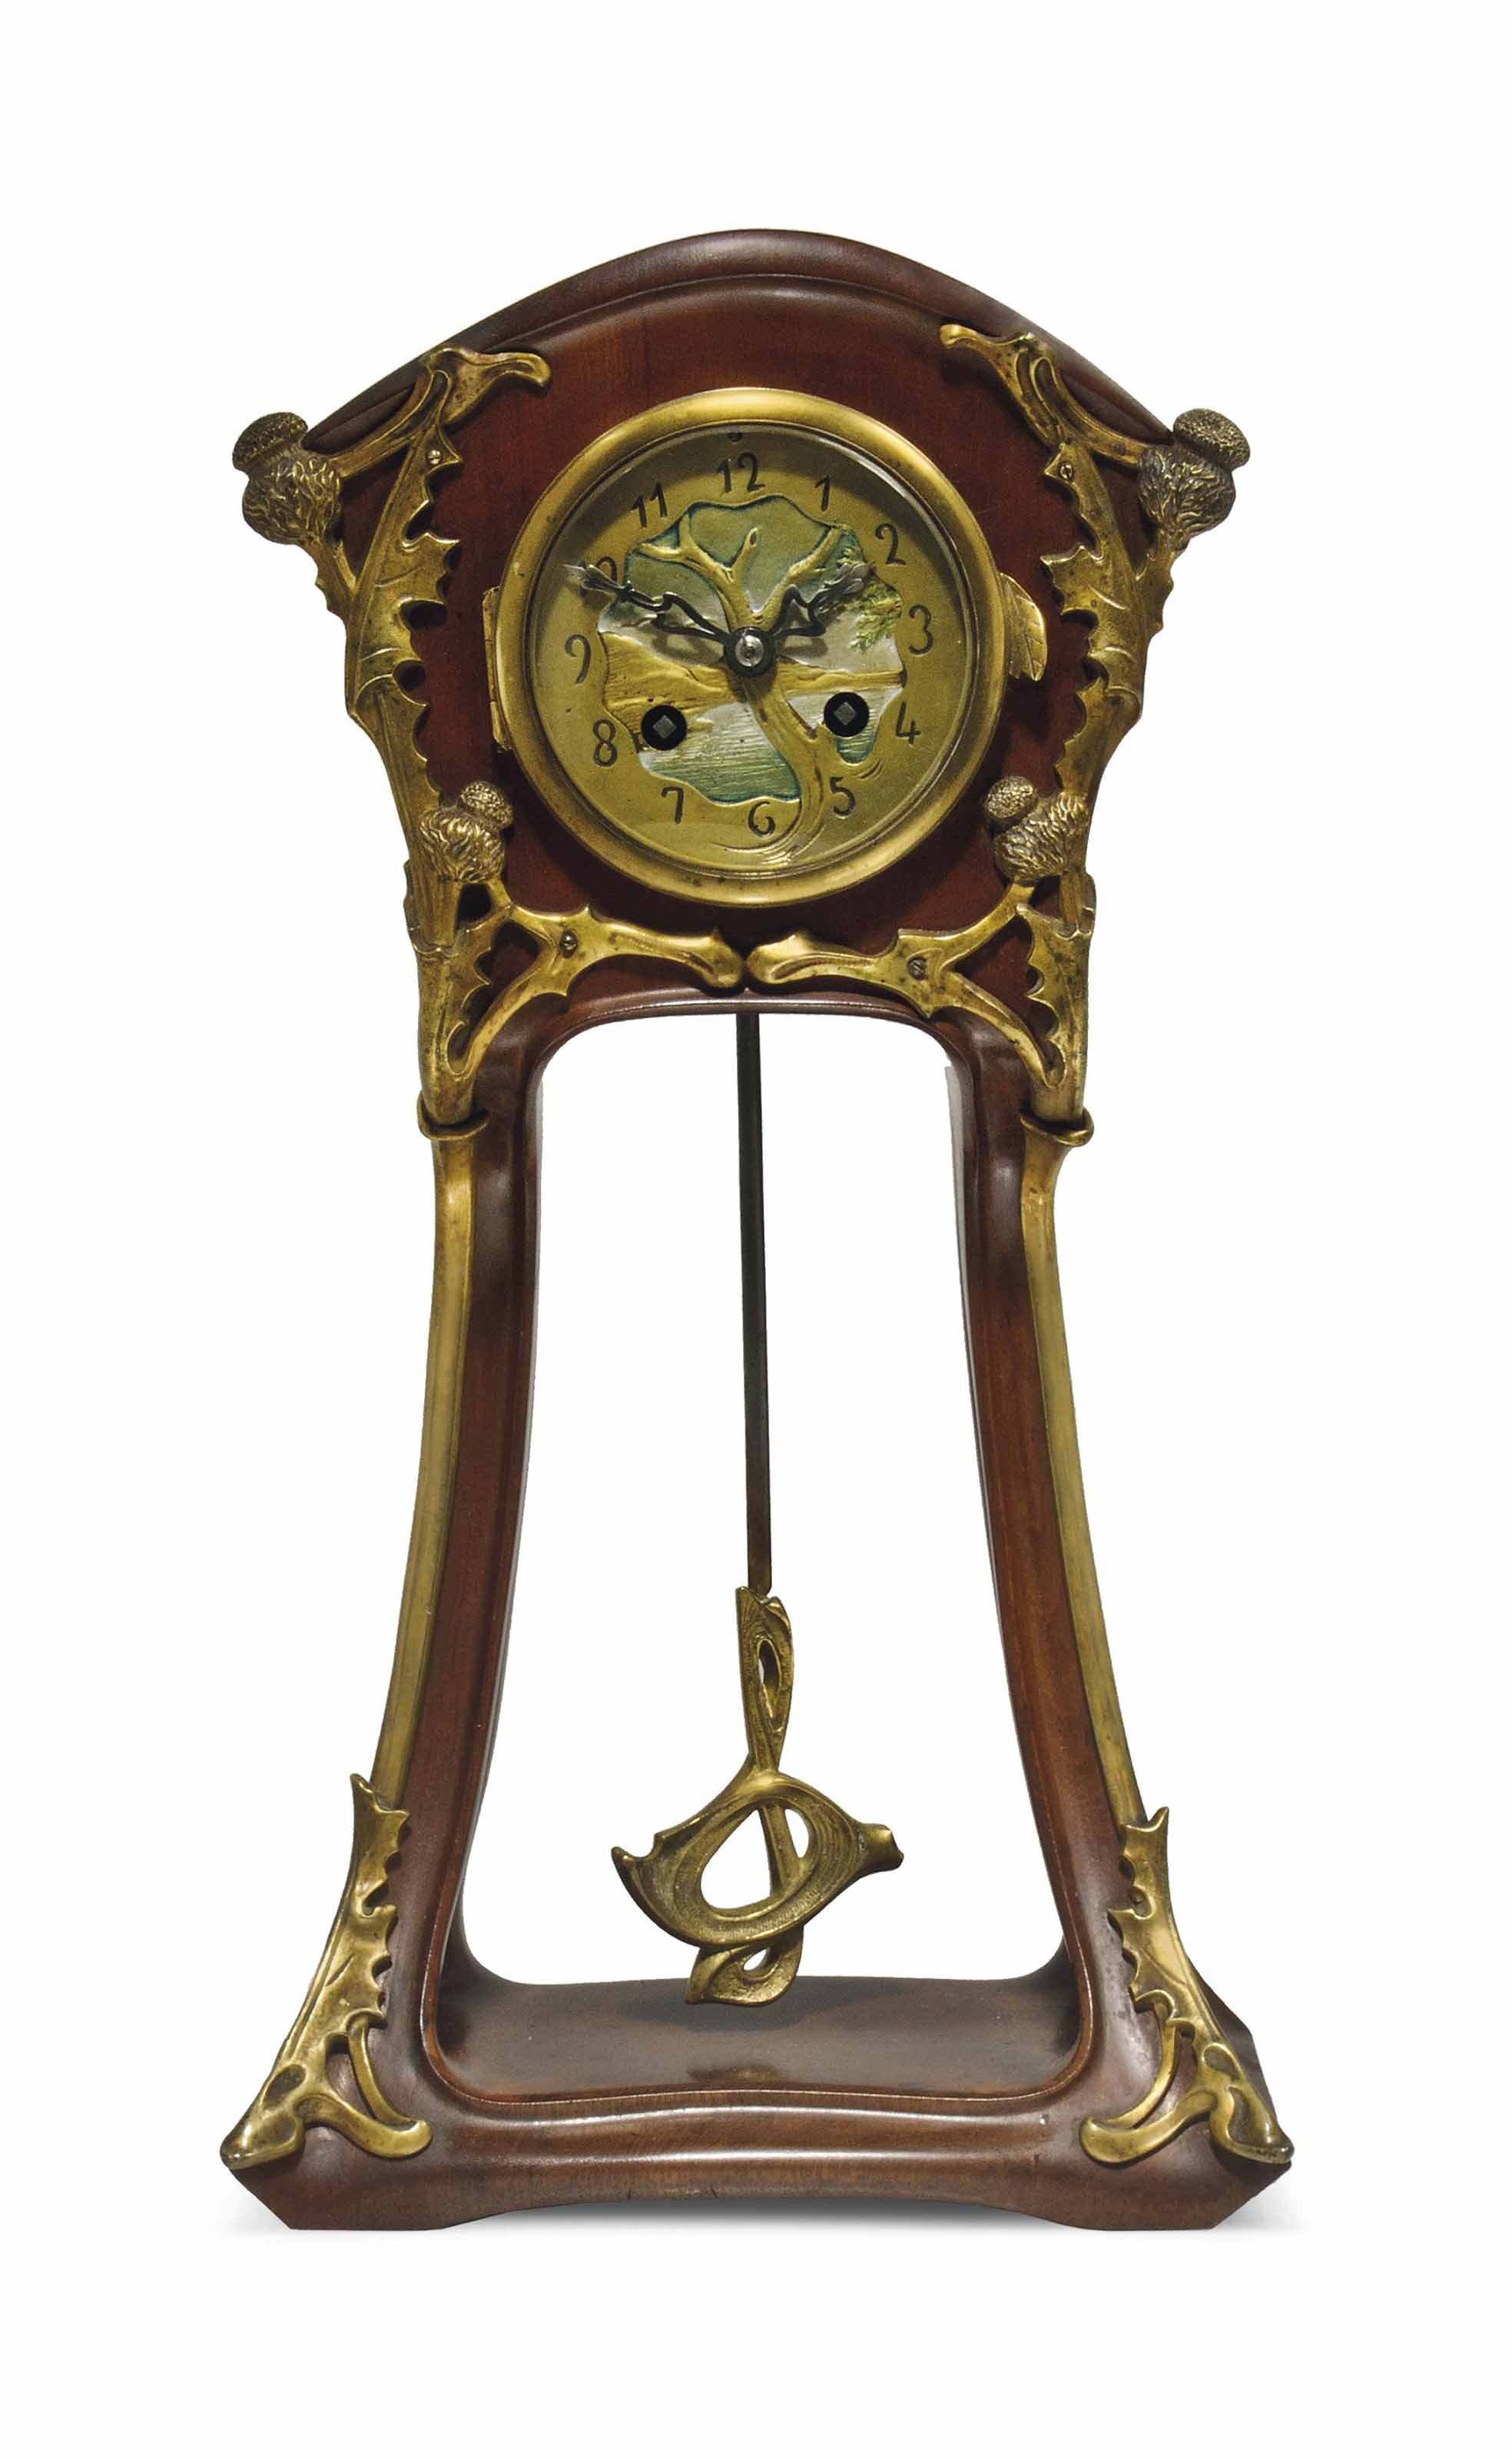 A LOUIS MAJORELLE (1859-1926) ART NOUVEAU WALNUT AND GILT BRONZE MANTEL CLOCK